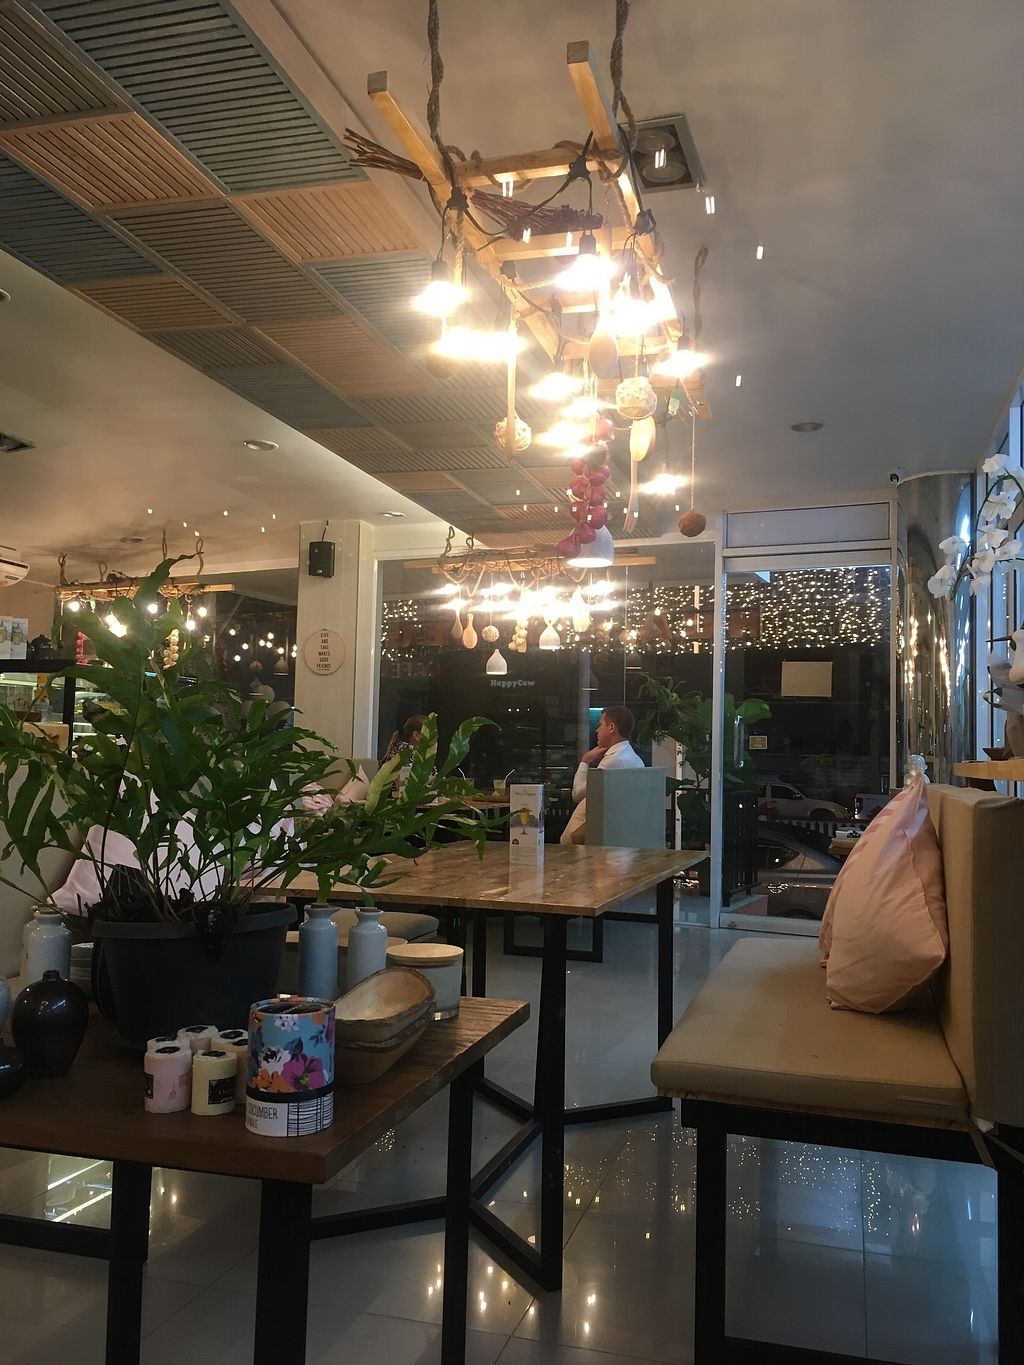 "Photo of Hua Hin Vegan Cafe and Wine  by <a href=""/members/profile/Charliemcleanash"">Charliemcleanash</a> <br/>The beautiful interior <br/> July 15, 2017  - <a href='/contact/abuse/image/95513/280476'>Report</a>"